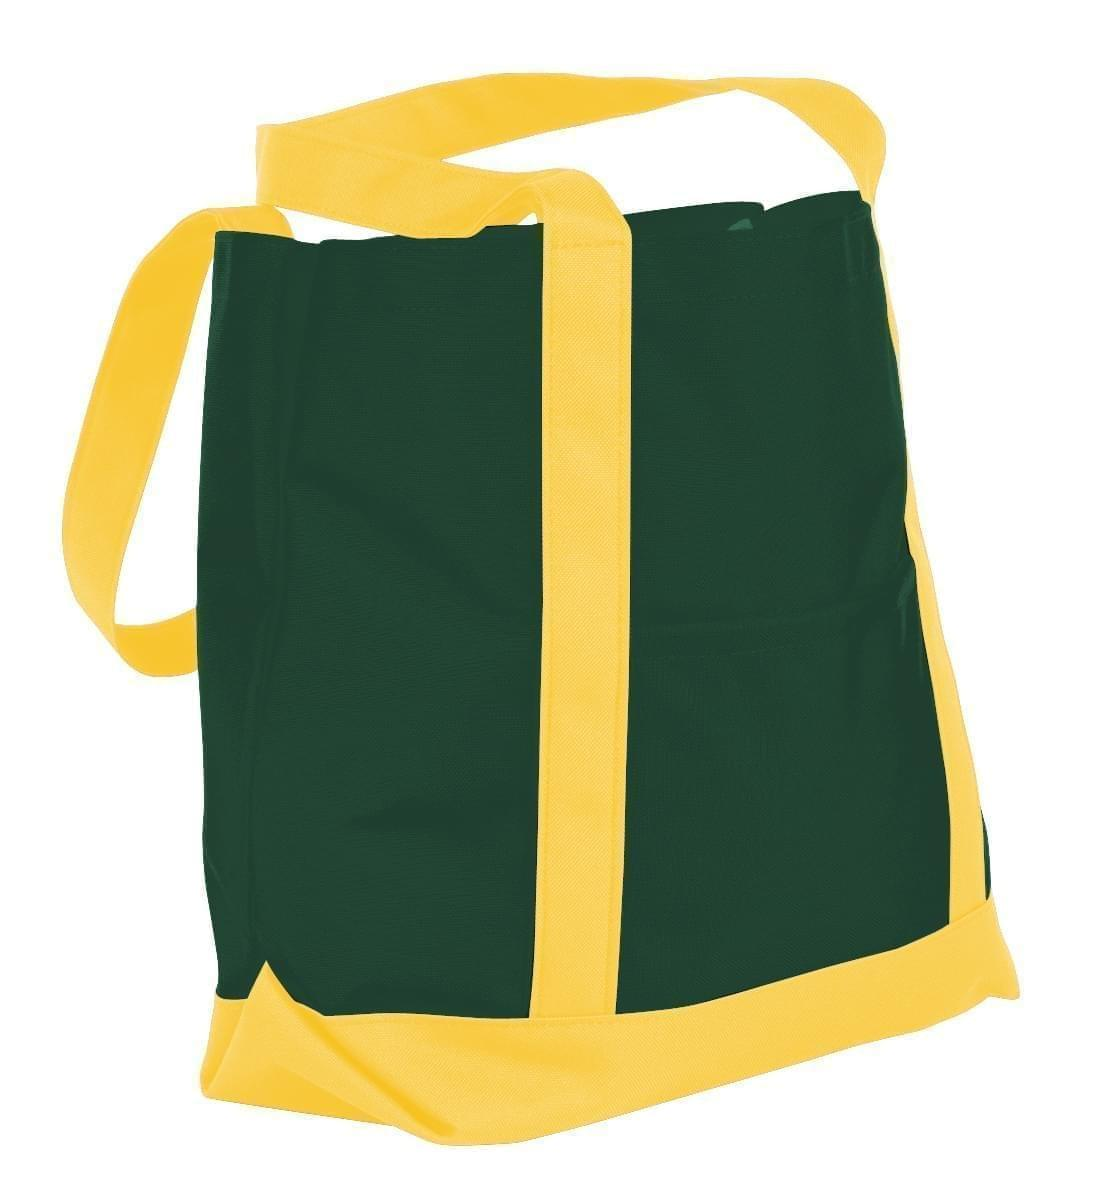 USA Made Nylon Poly Boat Tote Bags, Hunter Green-Gold, XAACL1UASQ